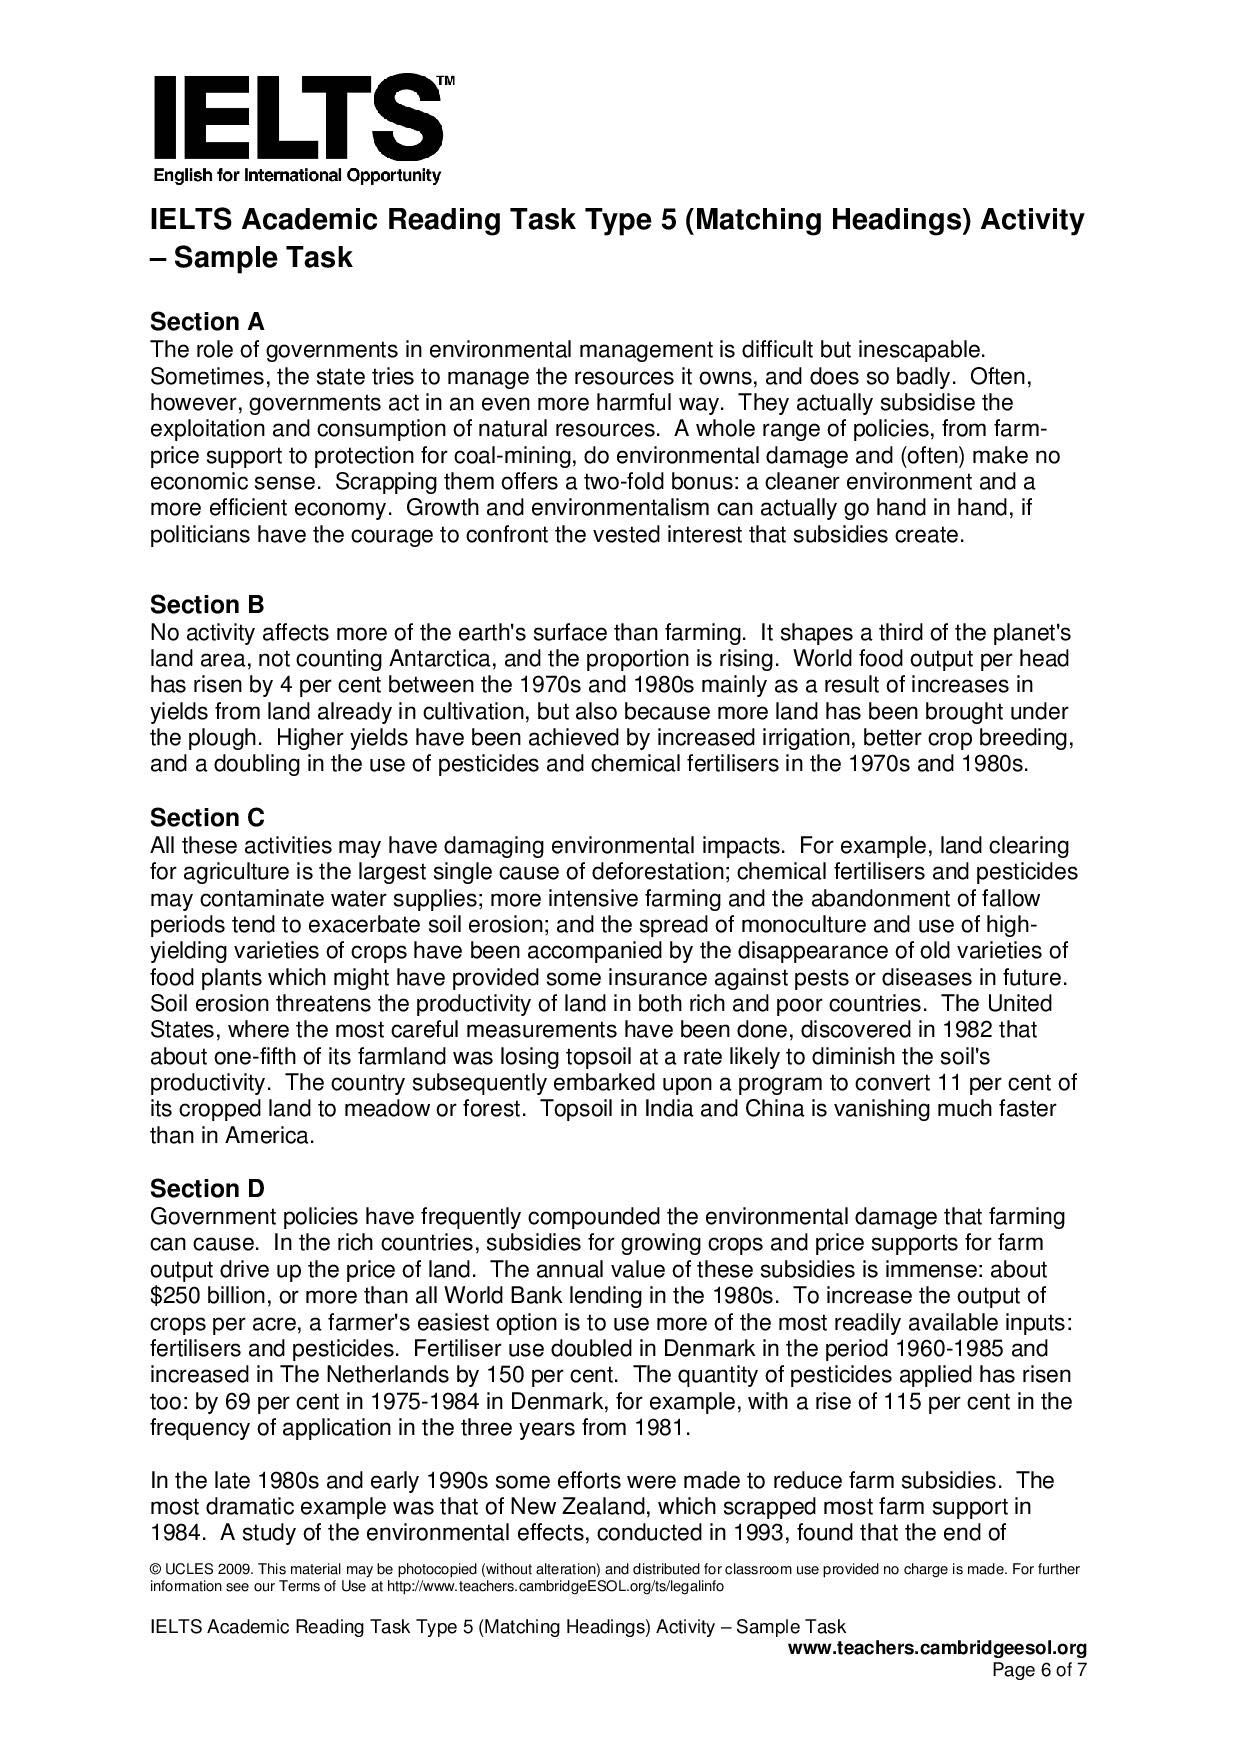 Ielts Academic Reading Task Type 5 Matching Headings Activity Sample Task Page 2